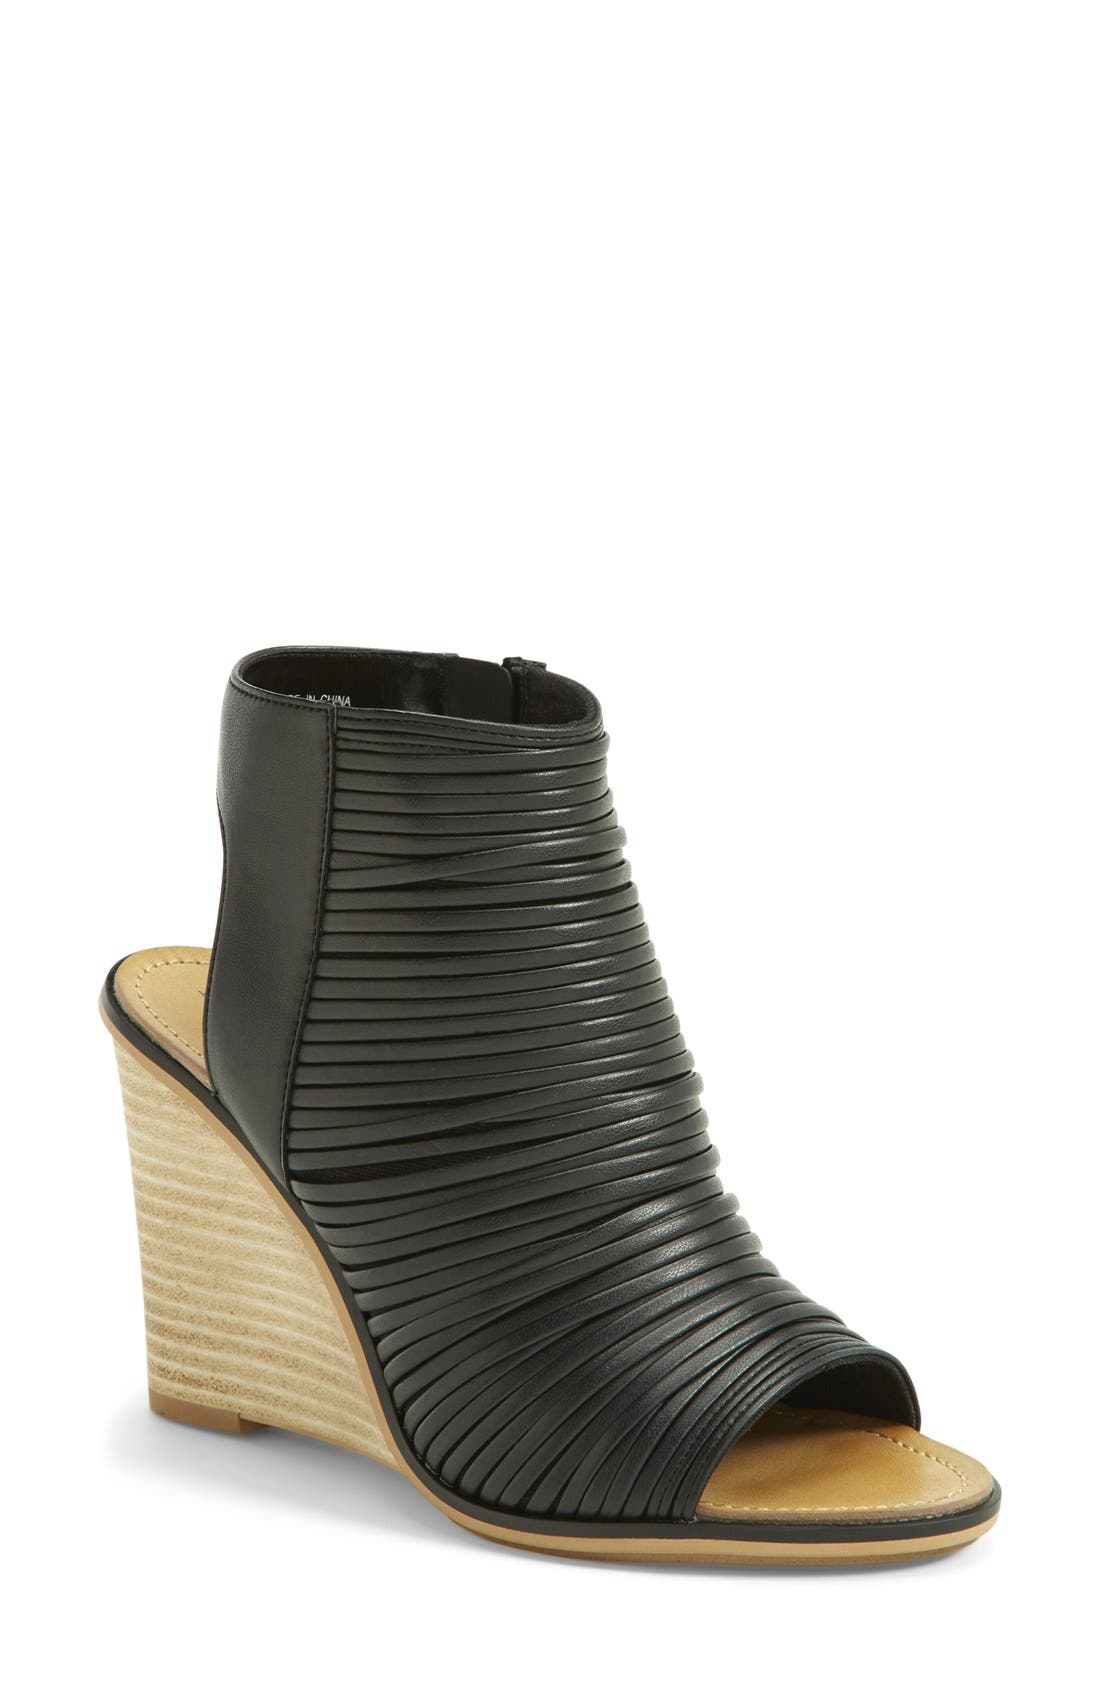 'Turner' Open Toe Wedge Bootie,                             Main thumbnail 1, color,                             003